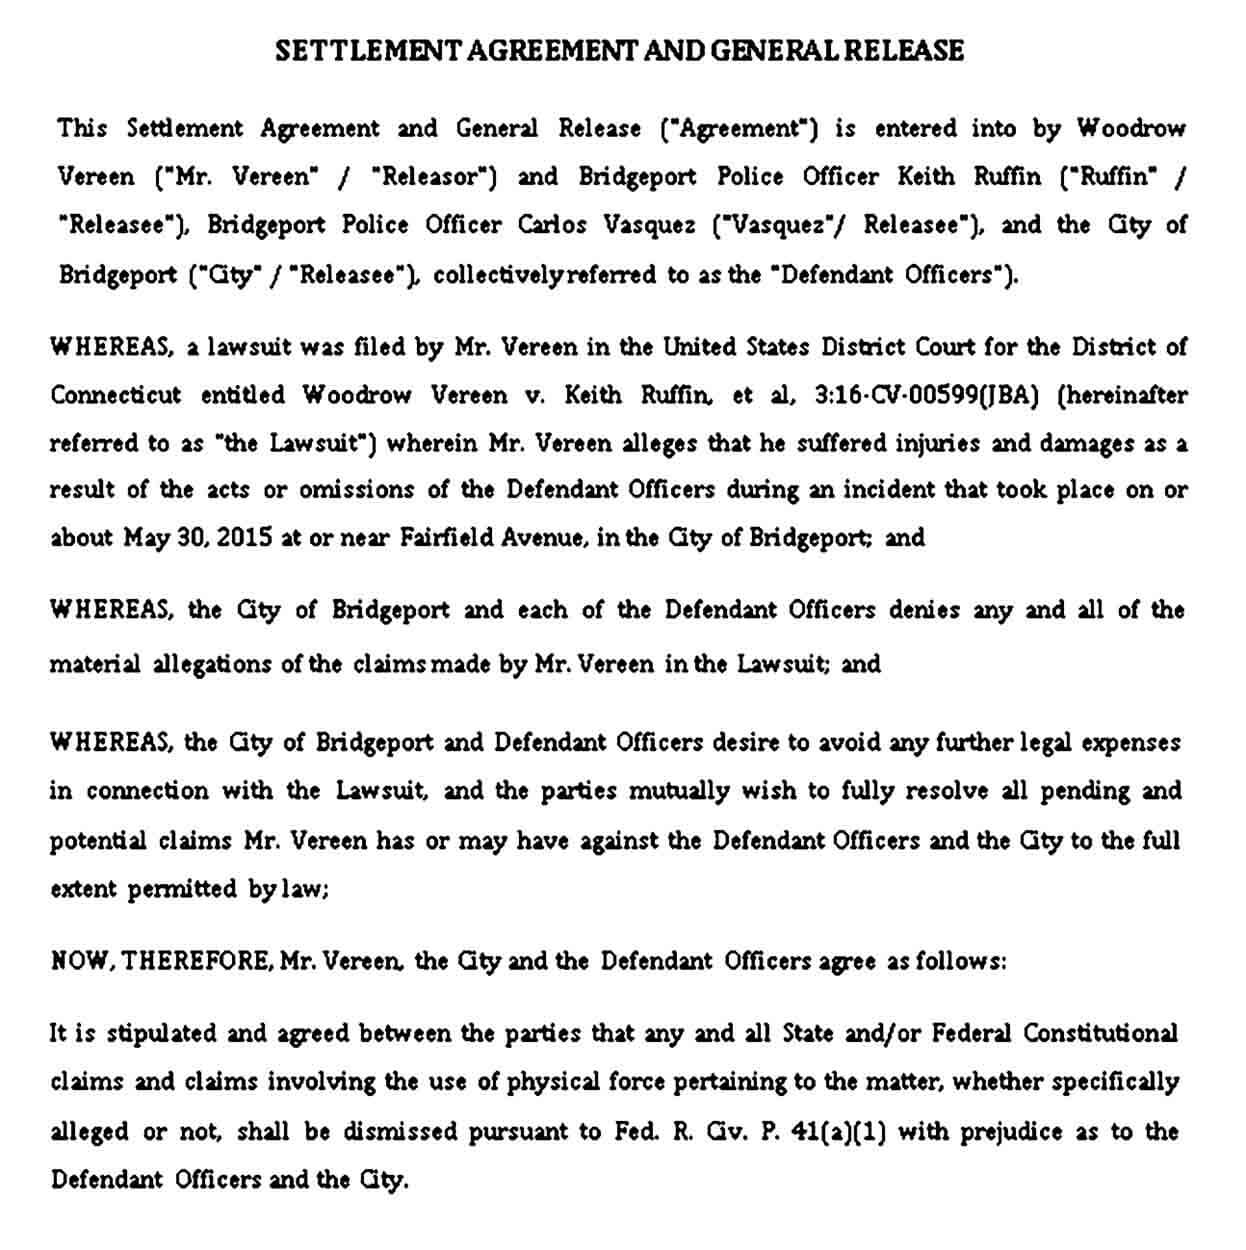 Settlement Agreement and General Release Sample